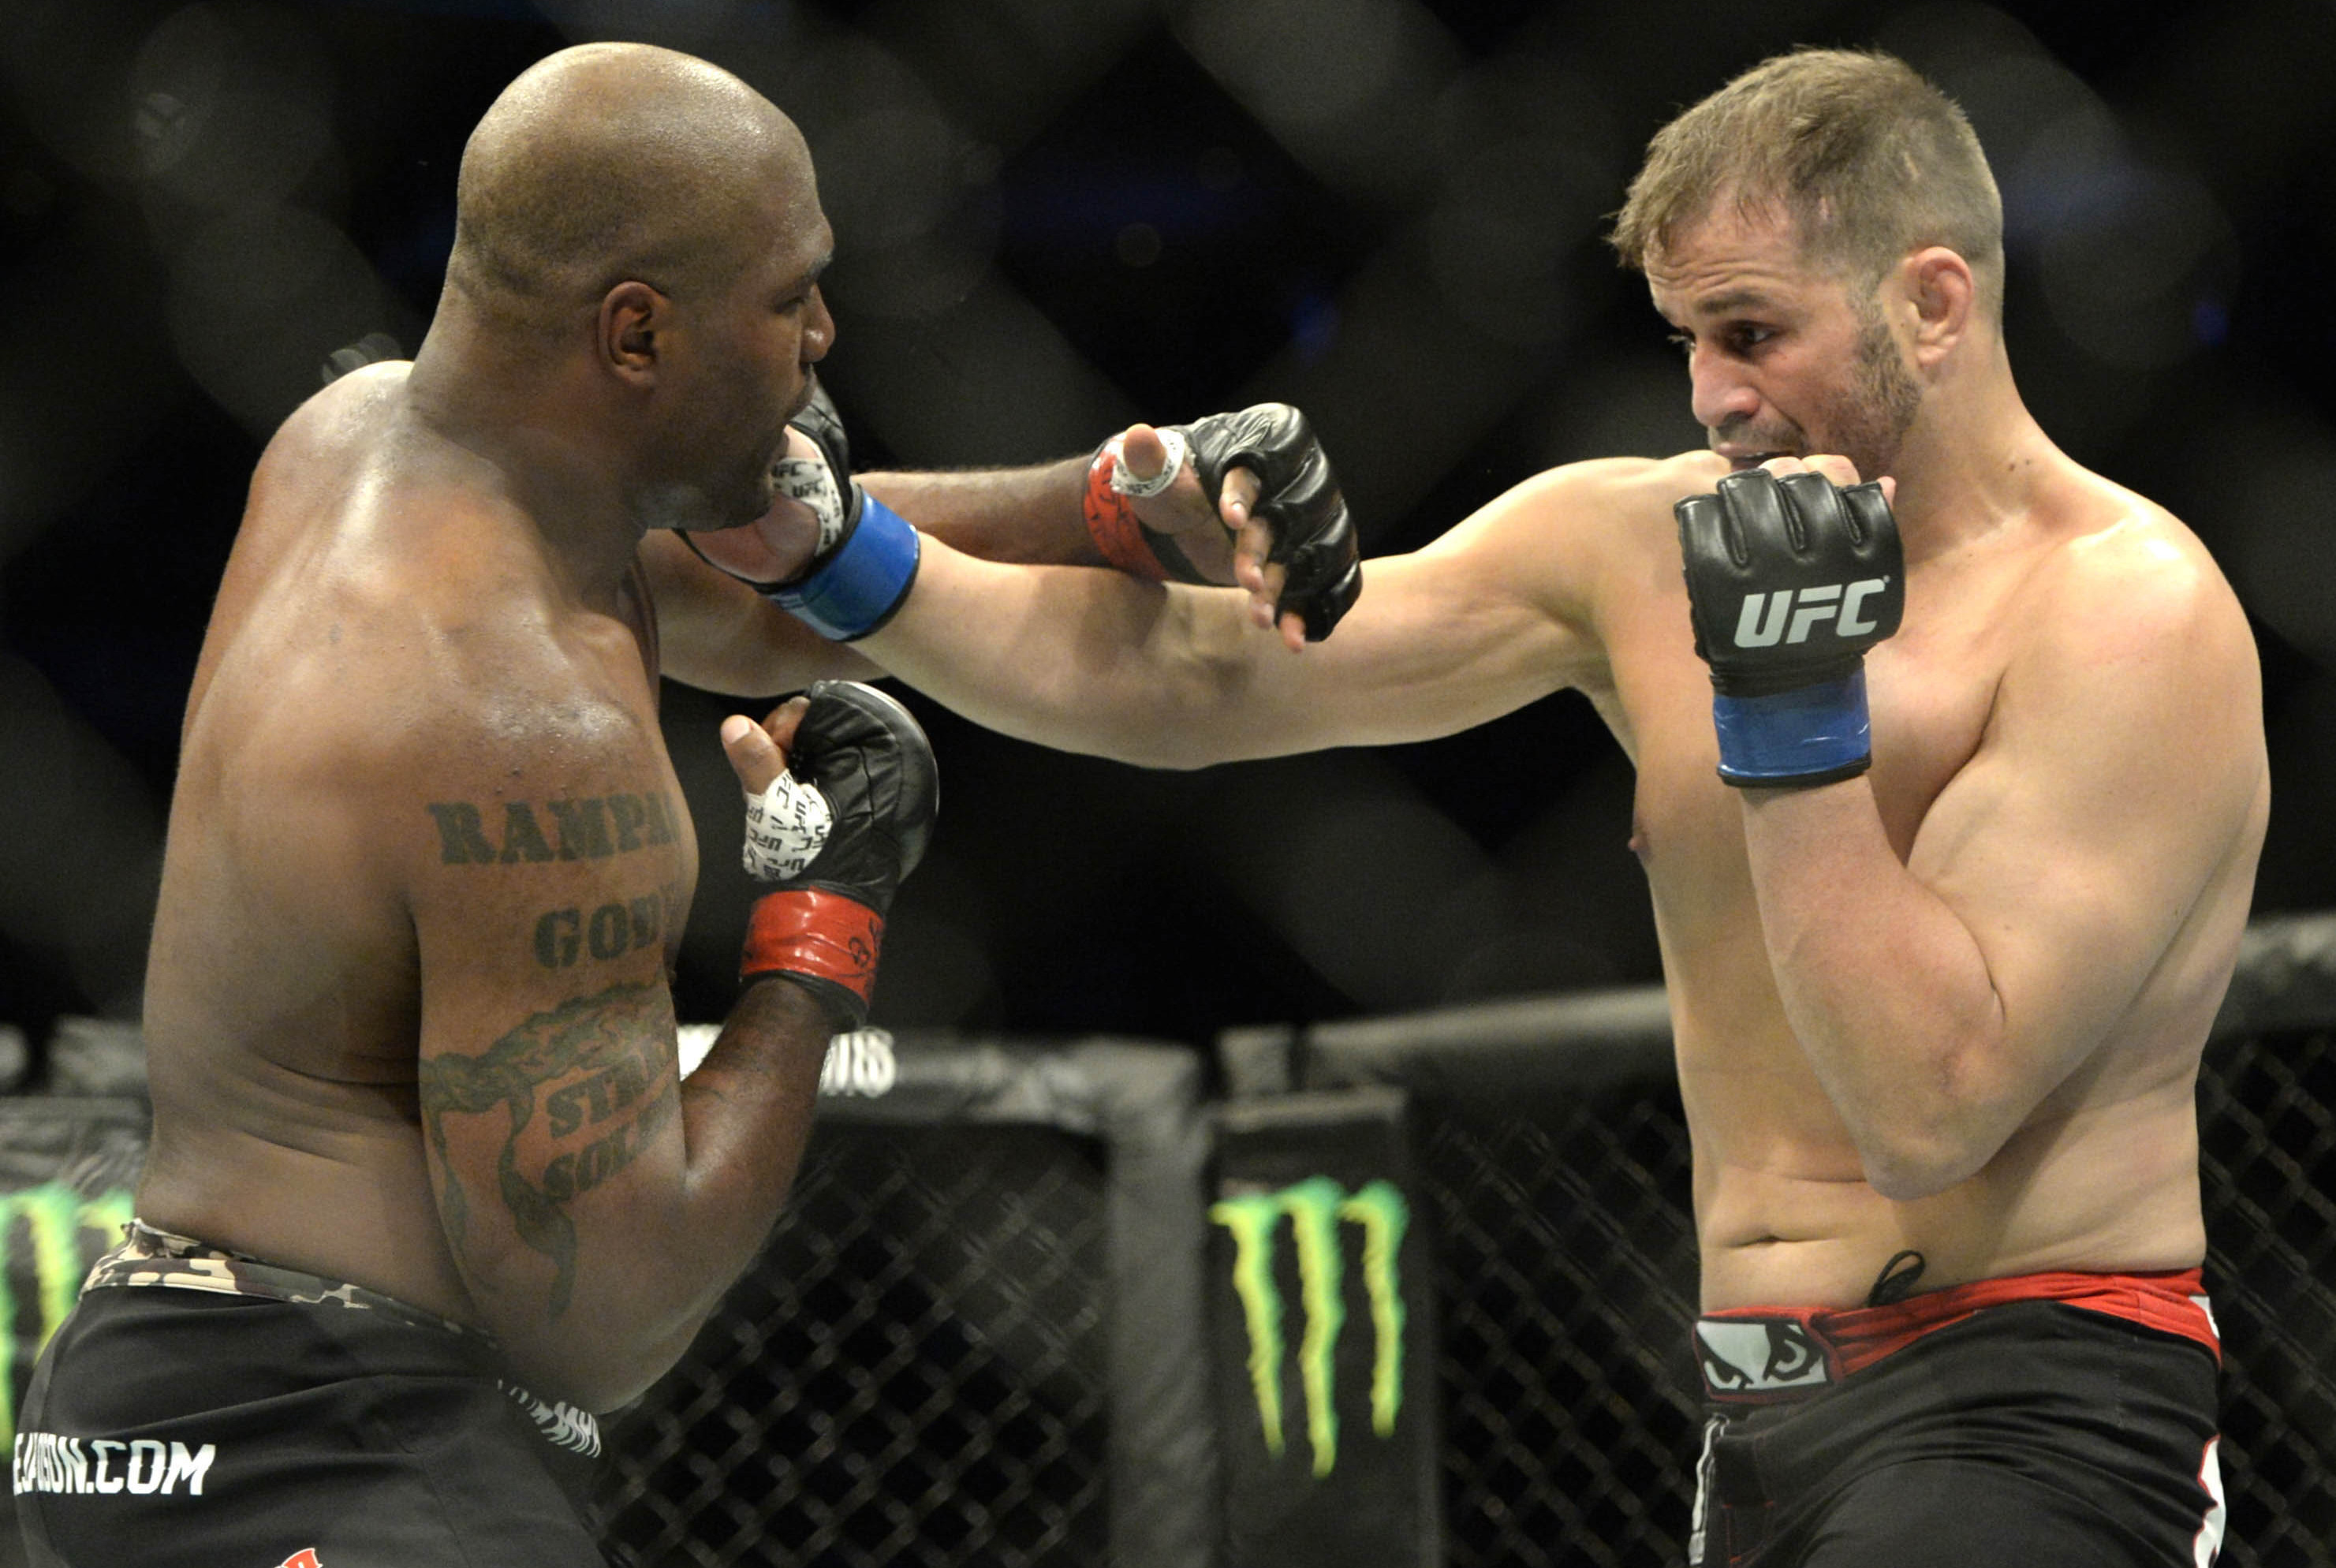 Rampage vs. Maldonado: Analyzing Saturday's Result at UFC 186 ...